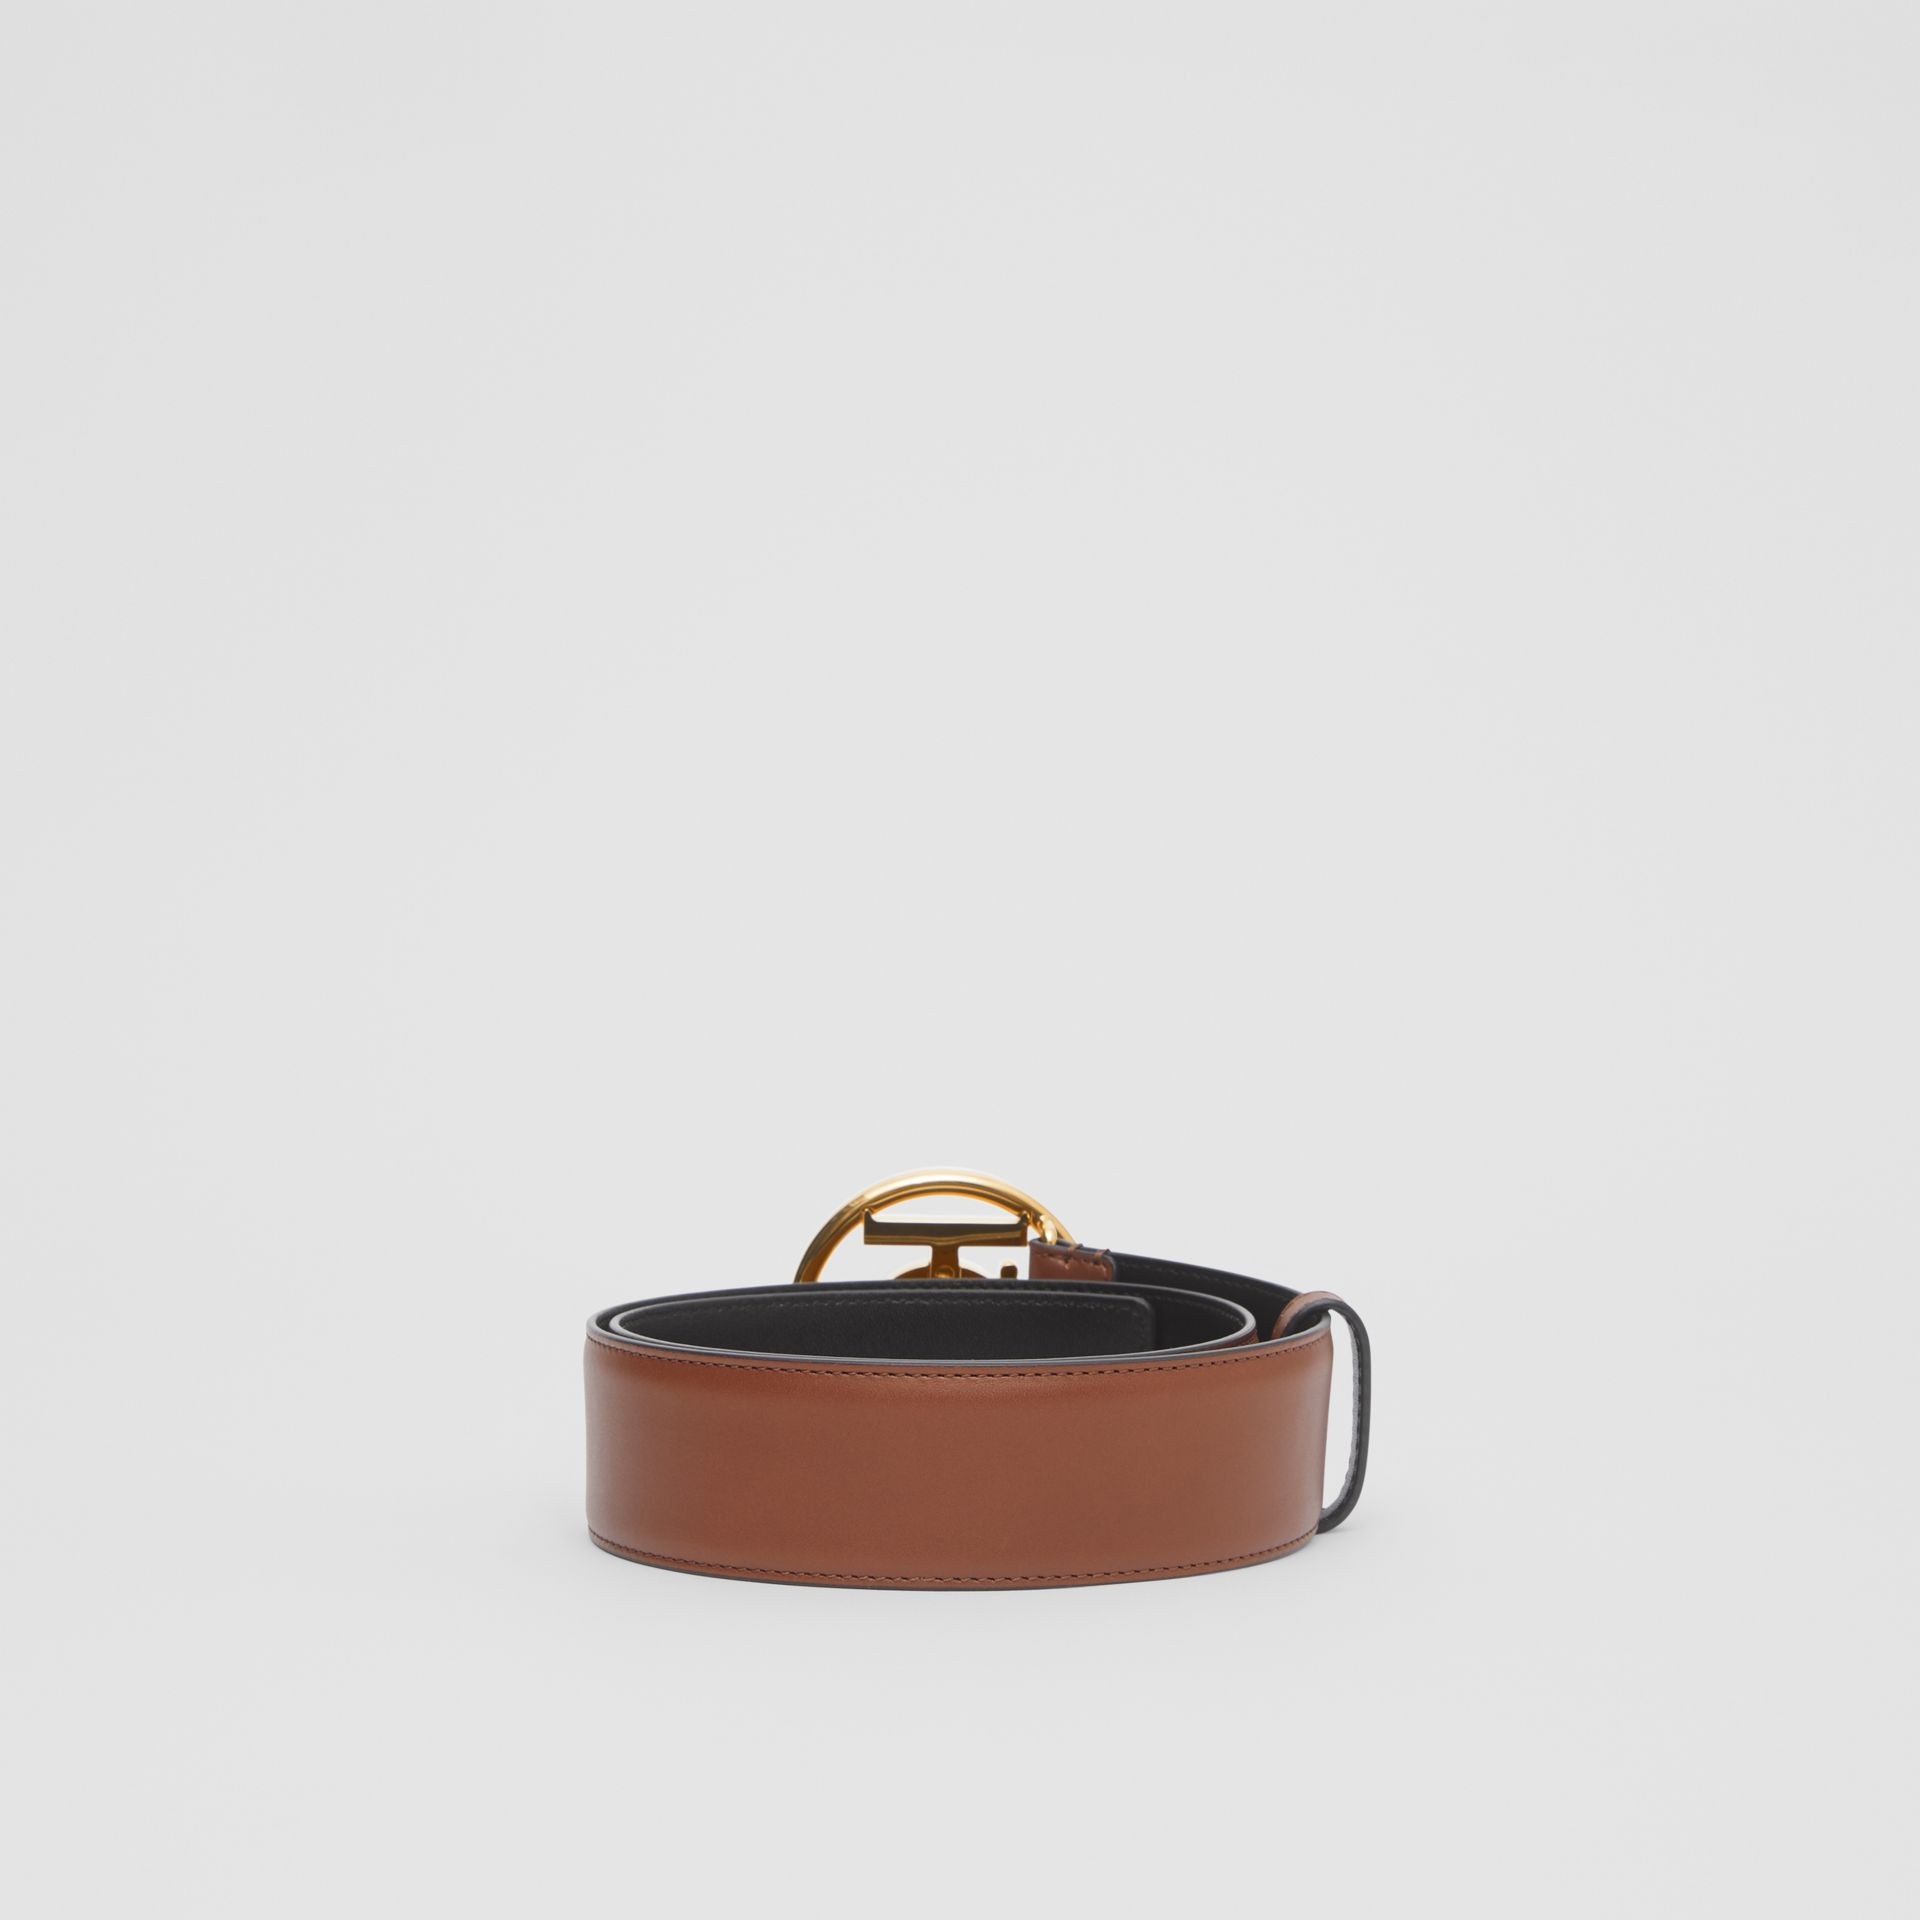 Monogram Motif Leather Belt in Tan/antique Dark Brass - Women | Burberry Hong Kong S.A.R - gallery image 3